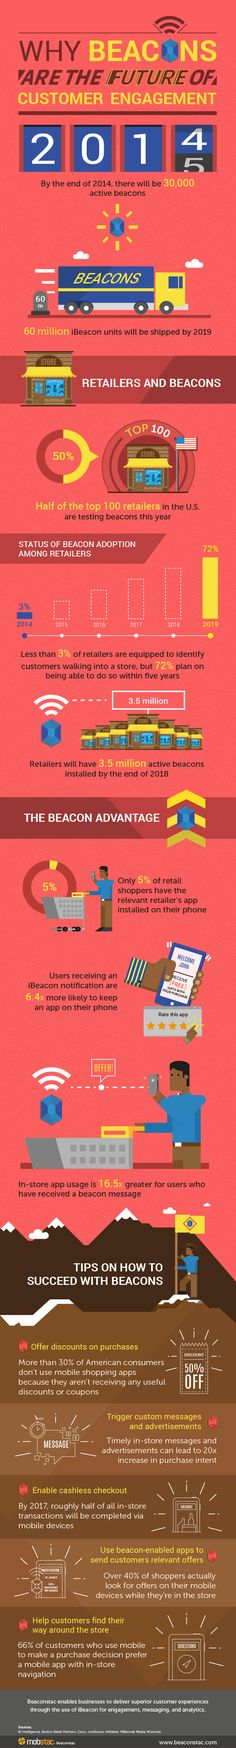 why-beacons-are-future-of-customer-engagement-infographic-beaconstac